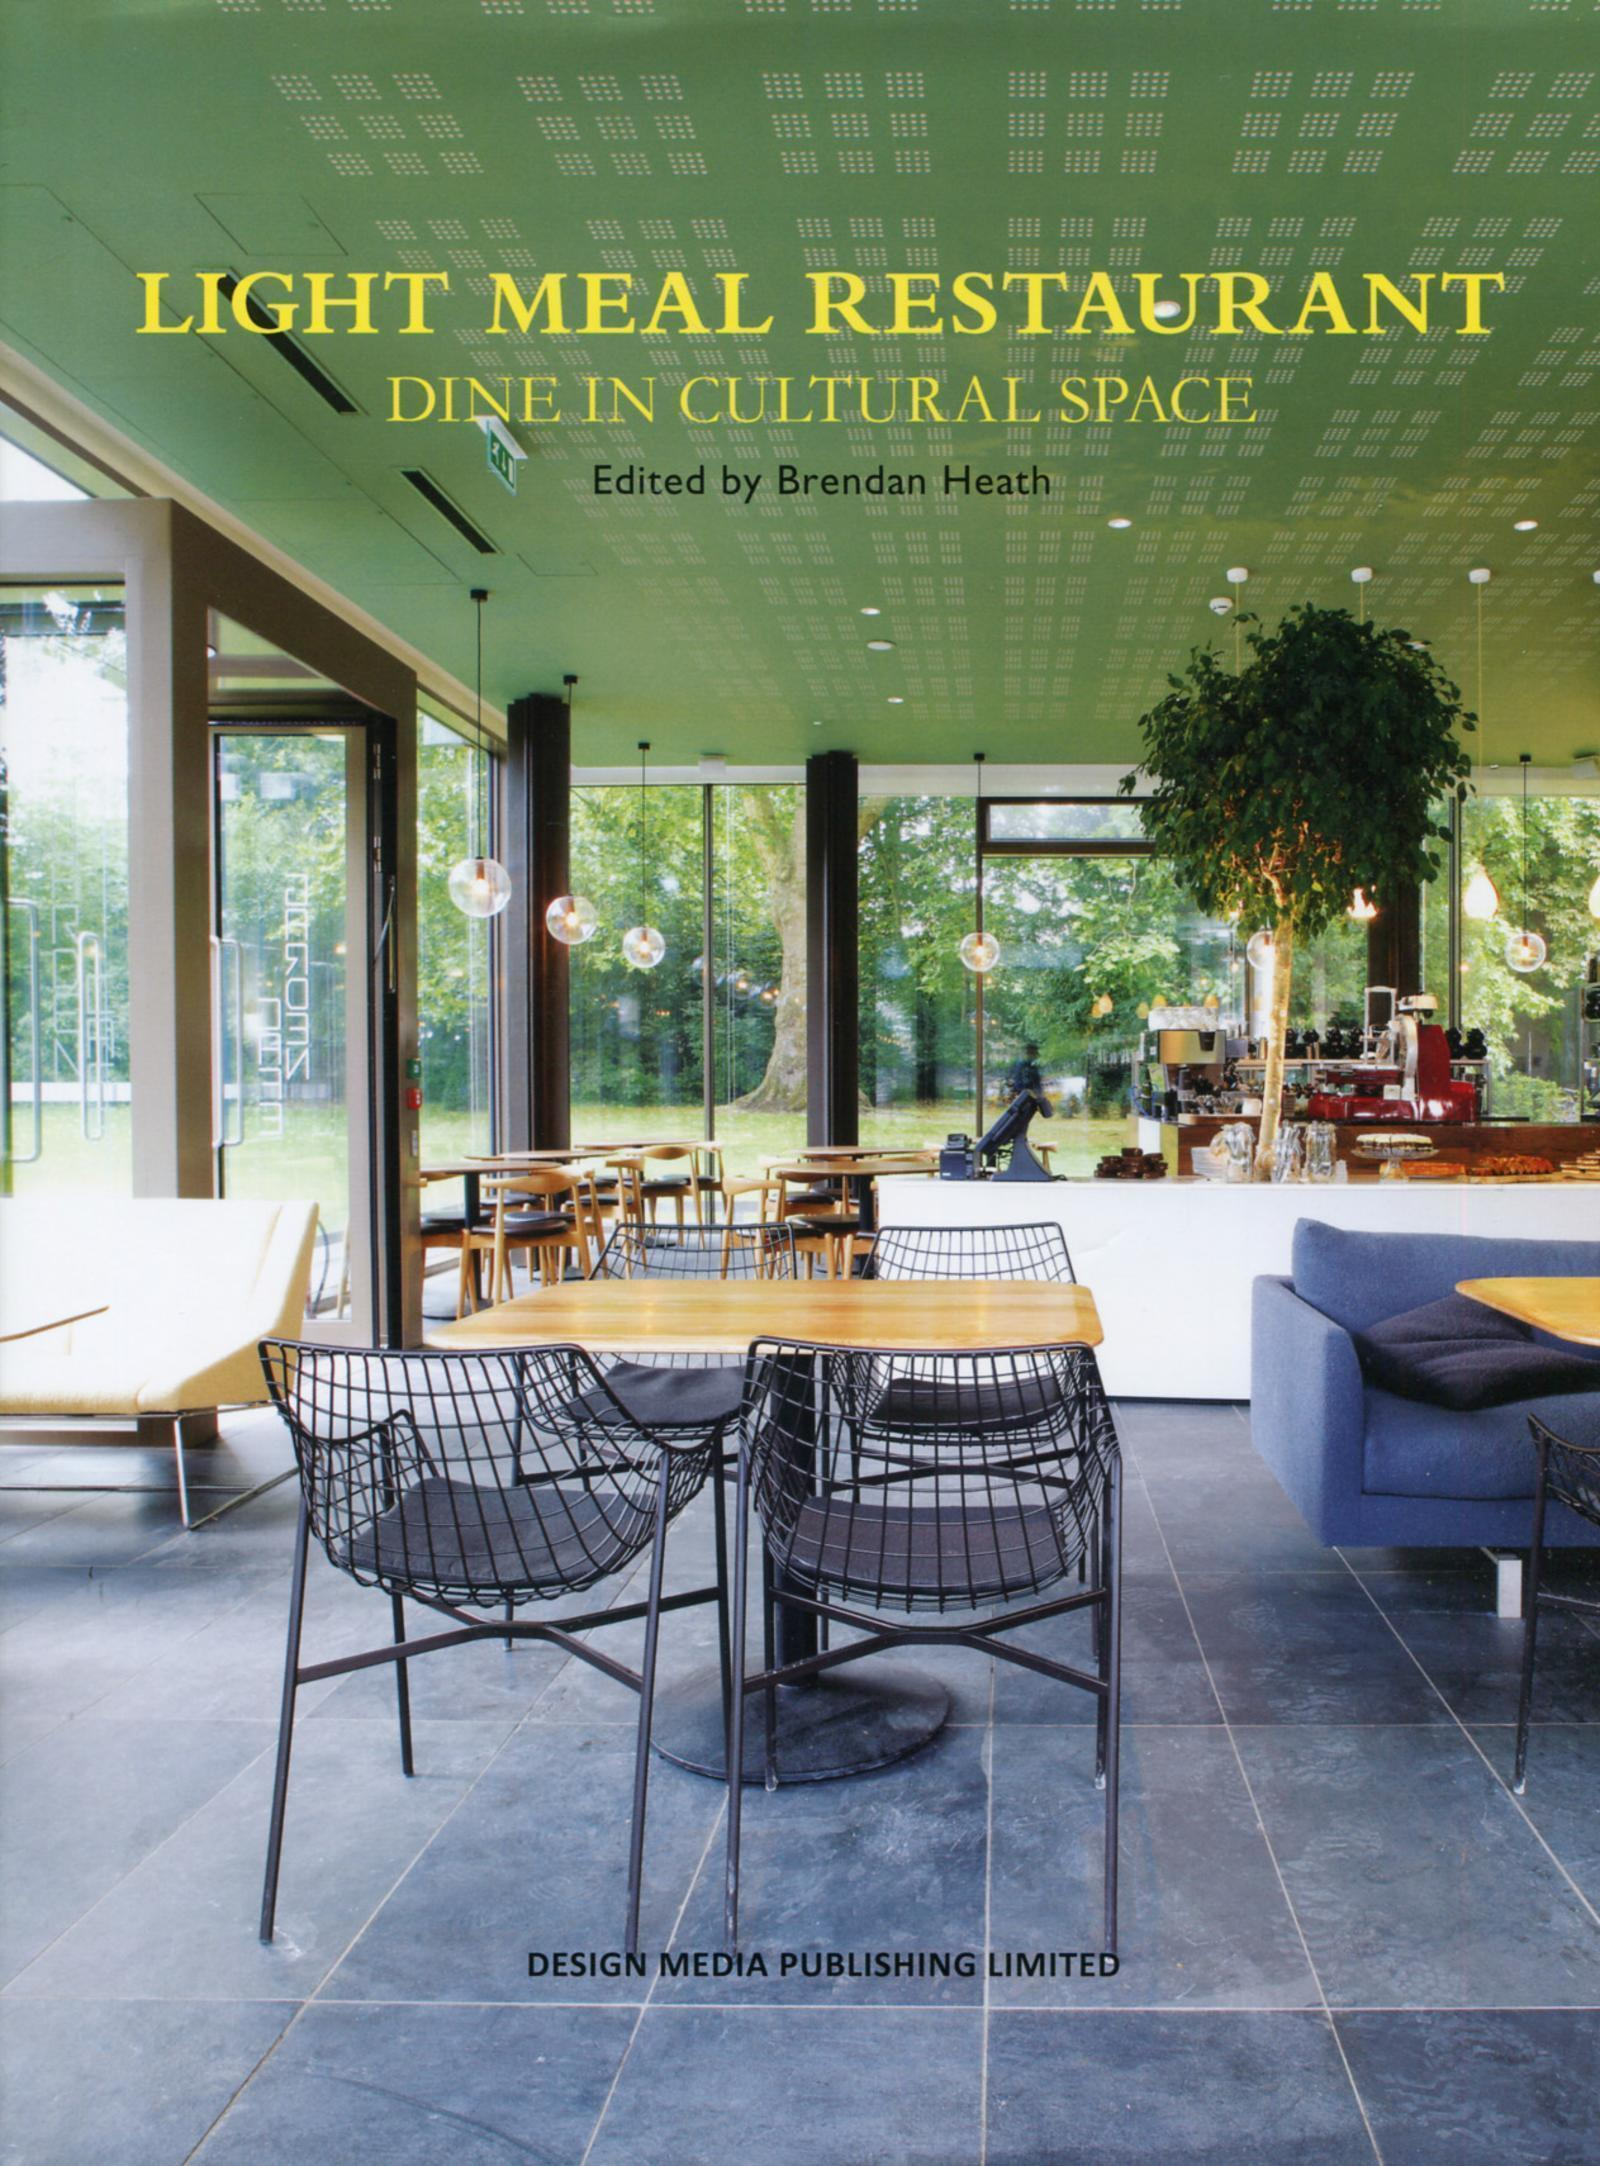 LIGHT MEAL RESTAURANT  DINE IN CULTURAL SPACE - DINE IN CULTURAL SPACE.